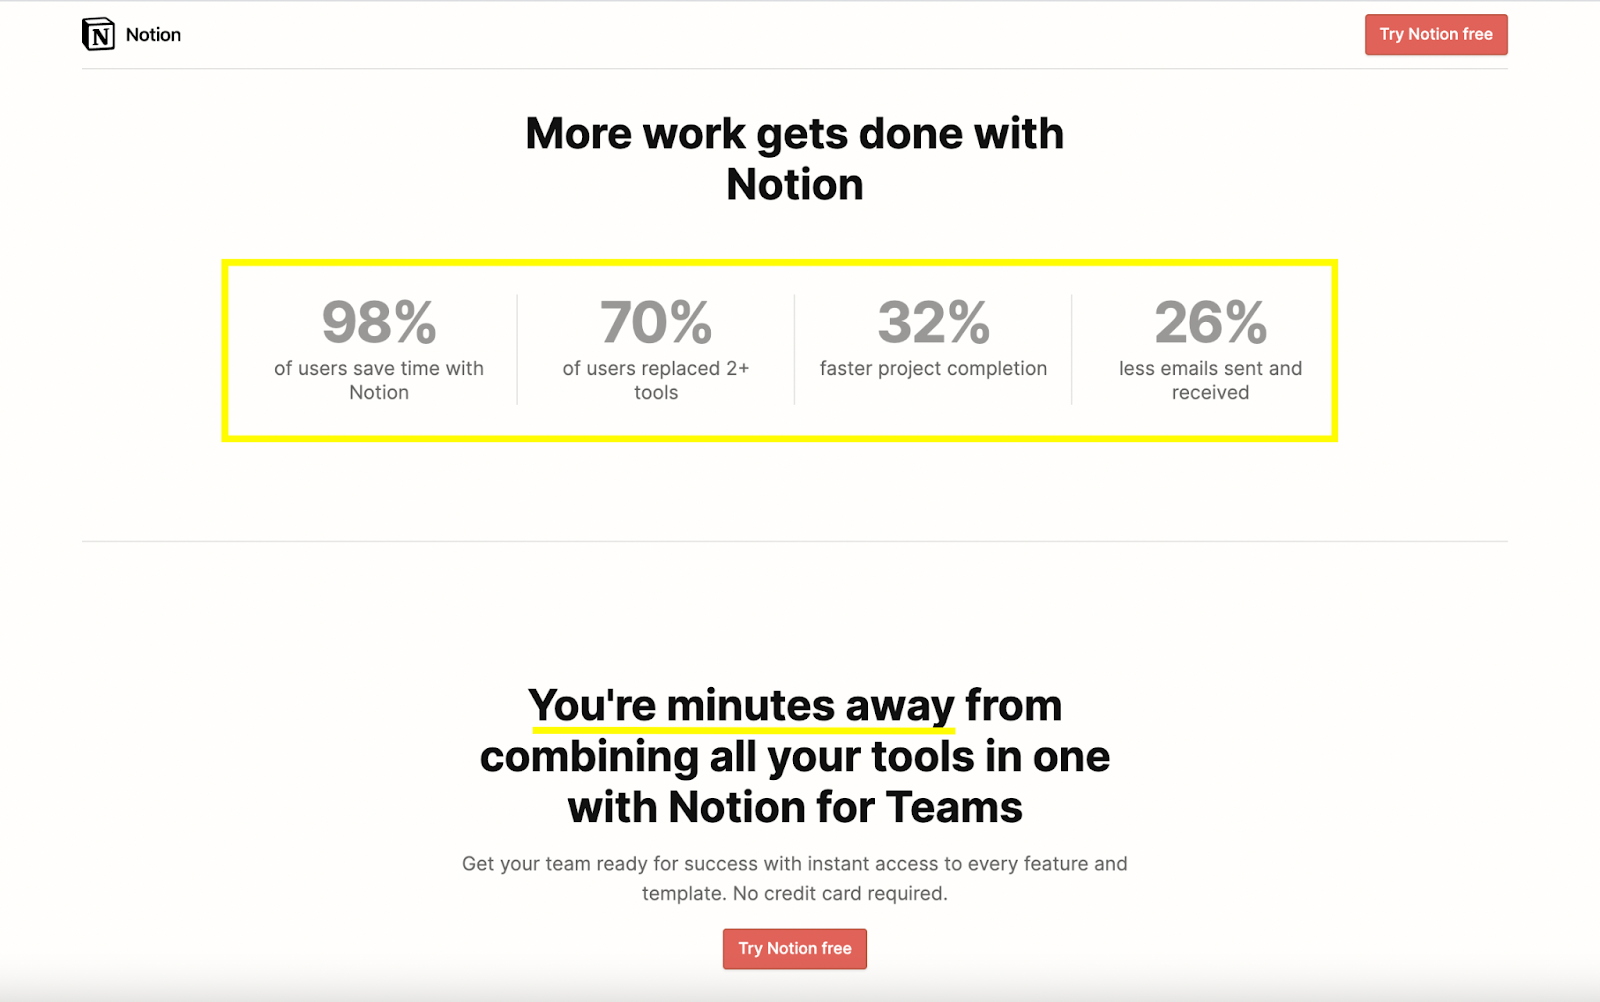 B2B landing pages - notion uses numbers